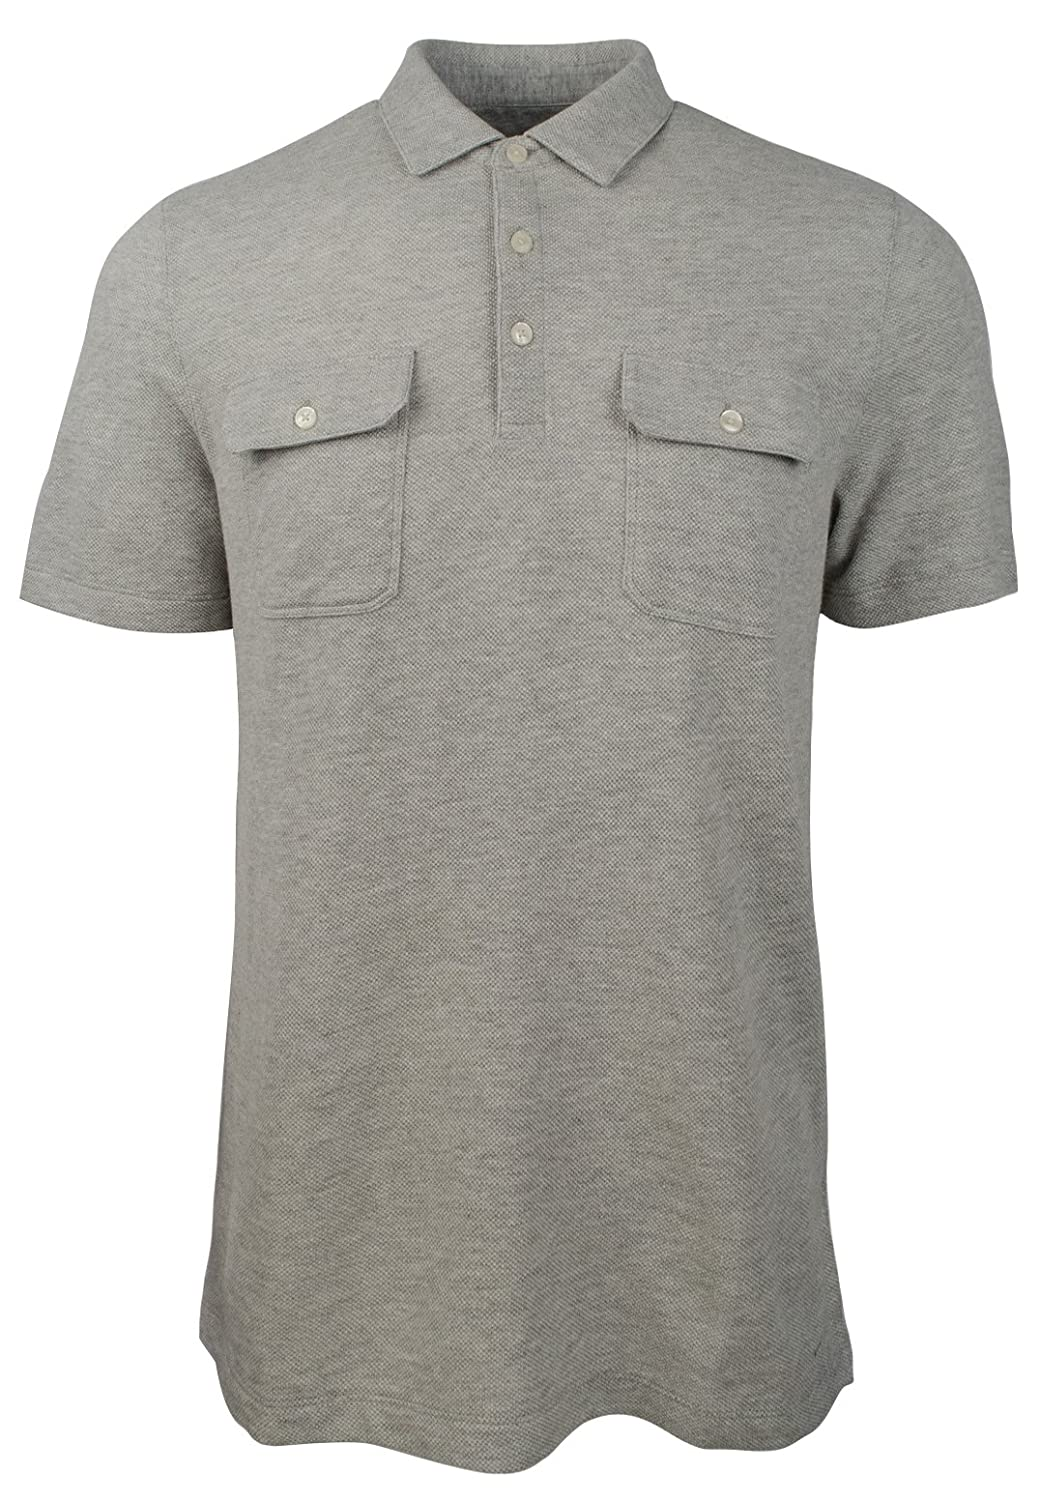 4a559e4c Michael Kors Men's Textured Dual Pocket Polo Shirt at Amazon Men's Clothing  store: